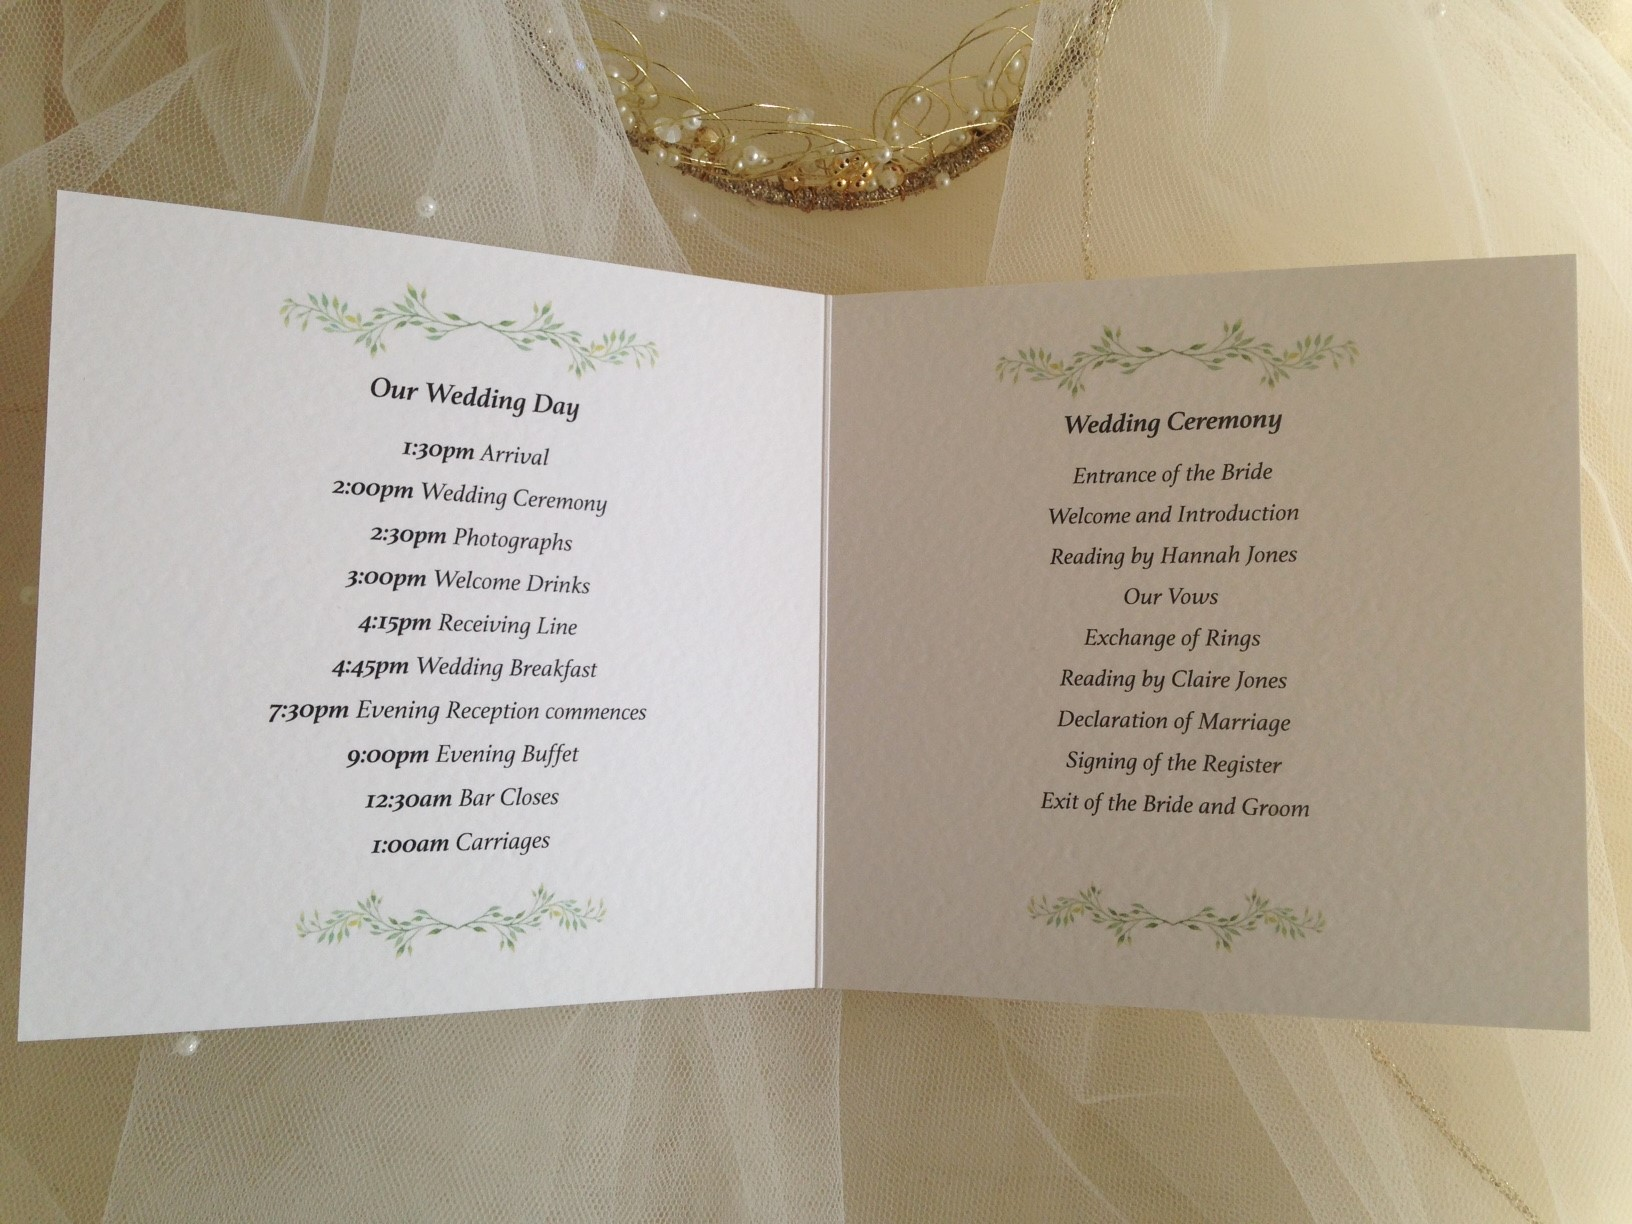 wedding blessing order of service template - order of service wedding template daisy chain invites